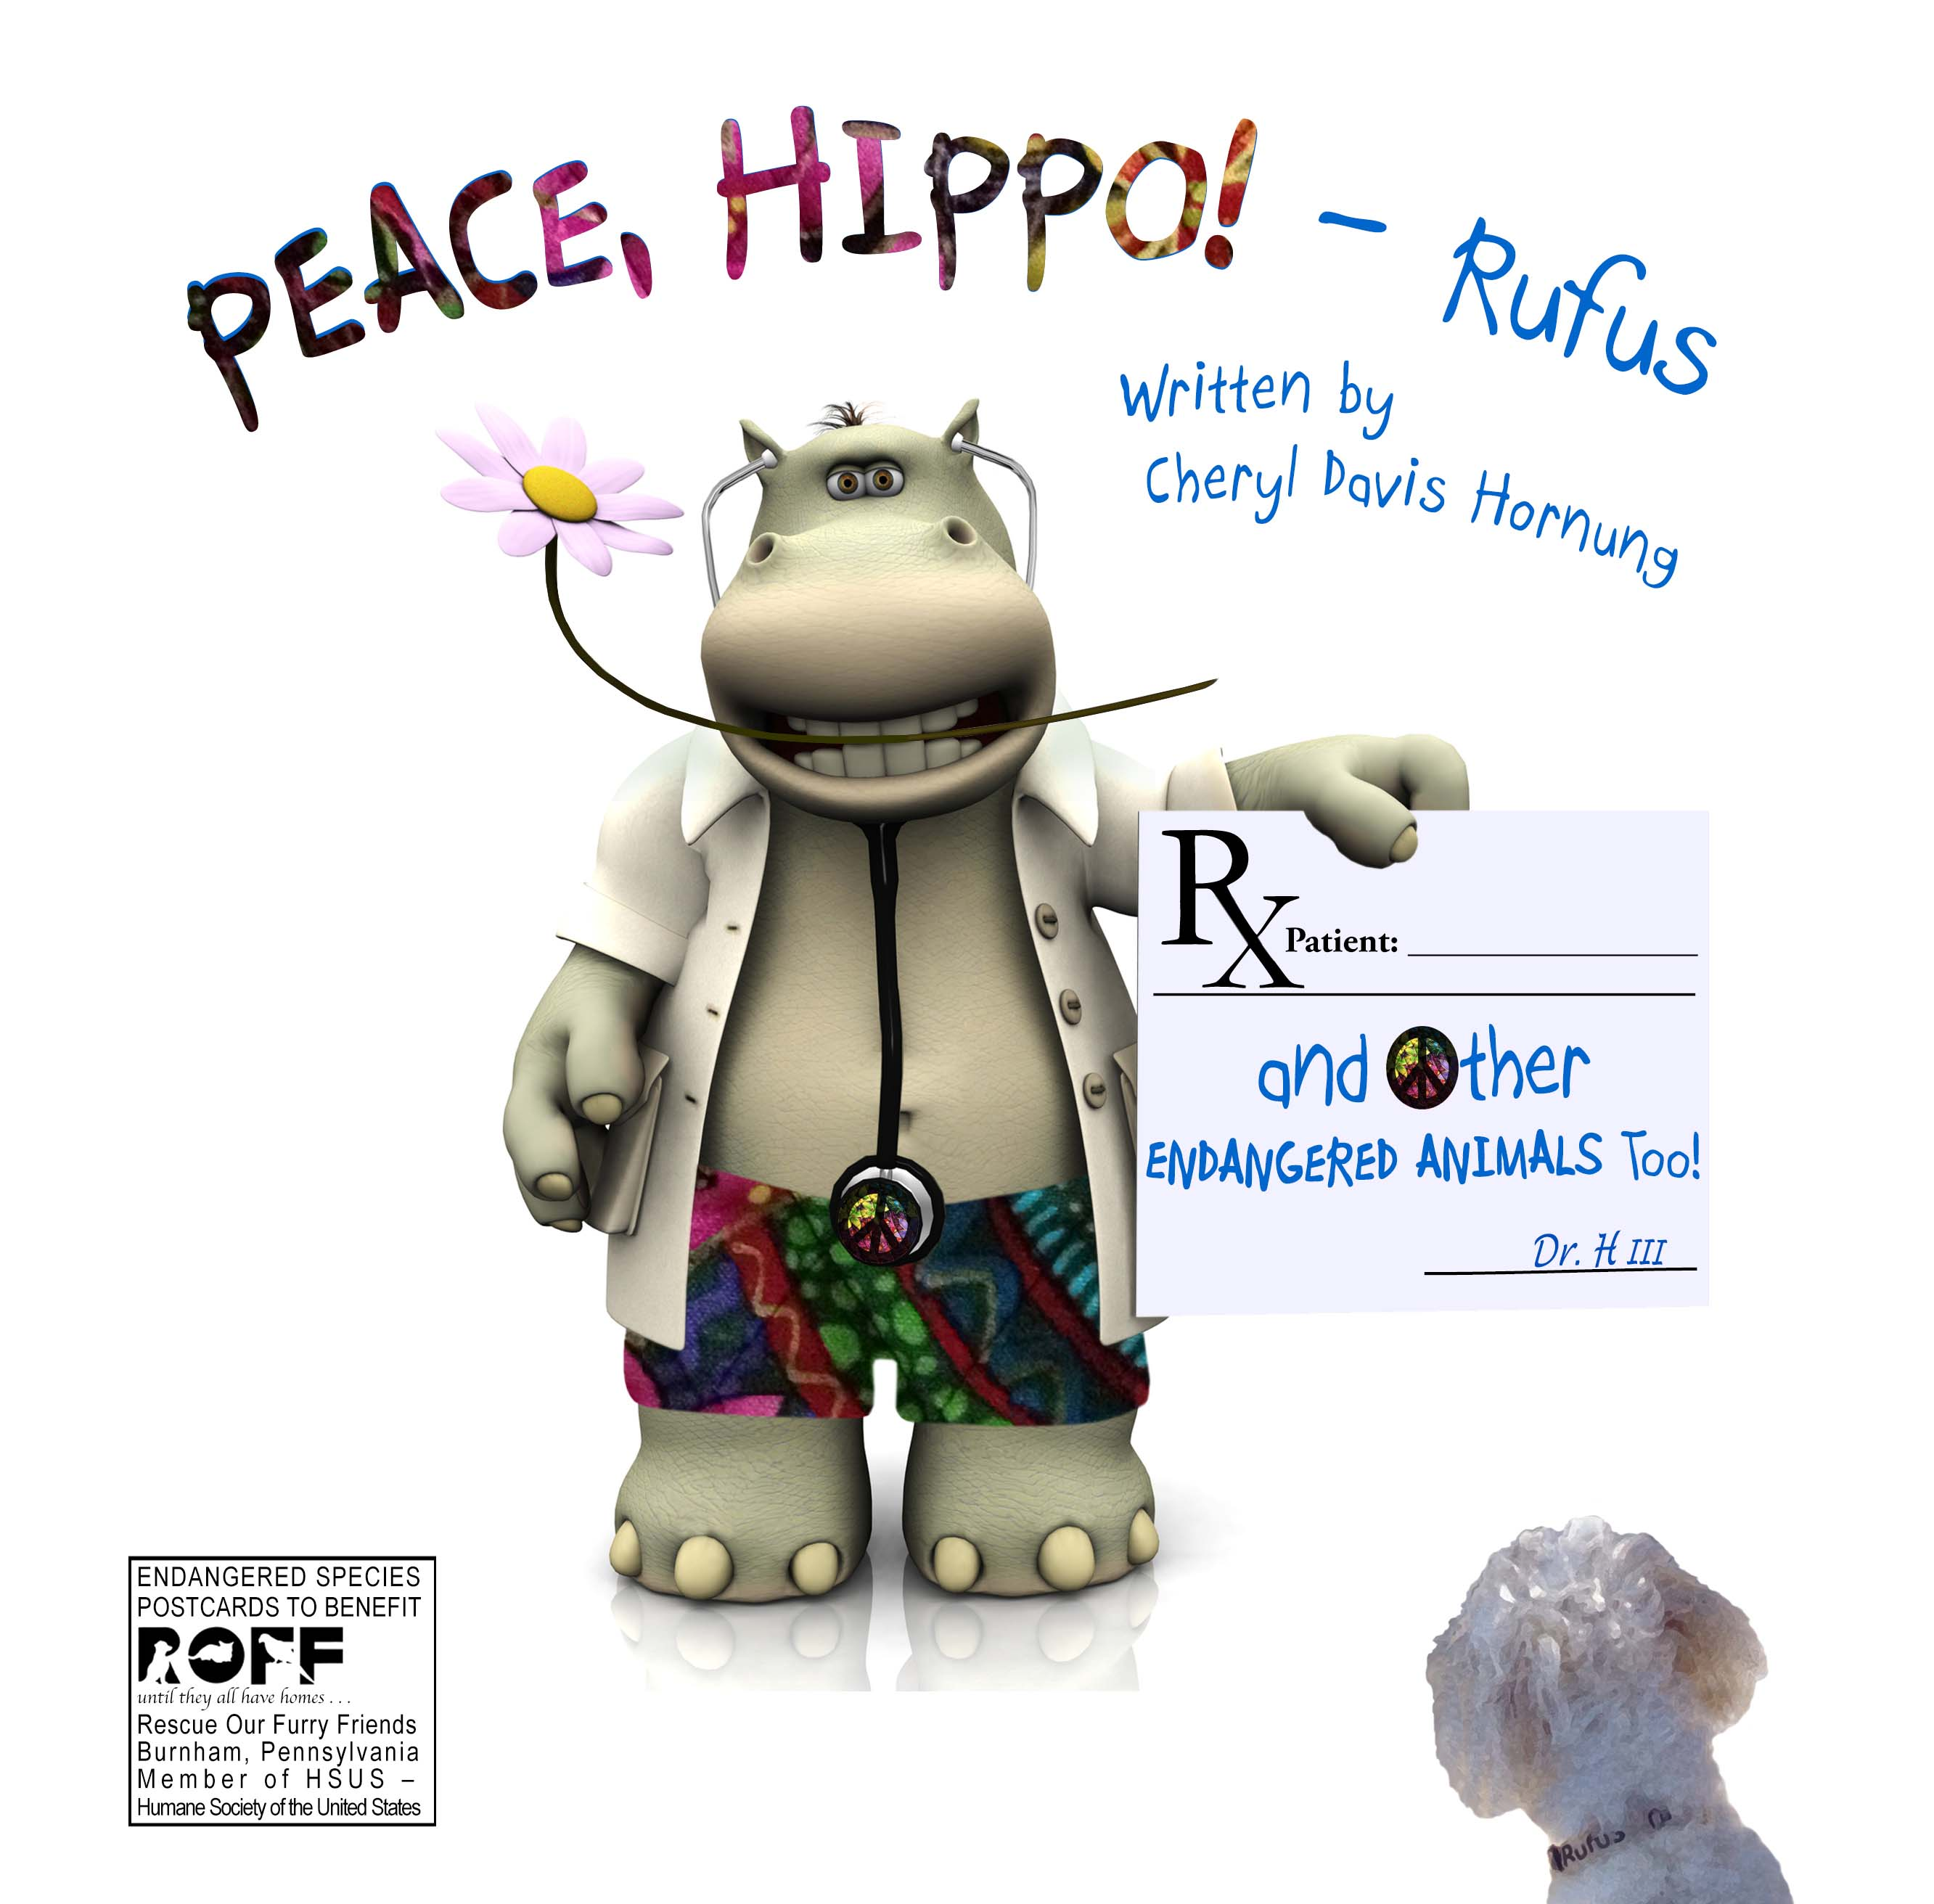 PEACE, HIPPO! and Other Endangered Animals Too! by Cheryl Davis Hornung available at Amazon and CreateSpace.